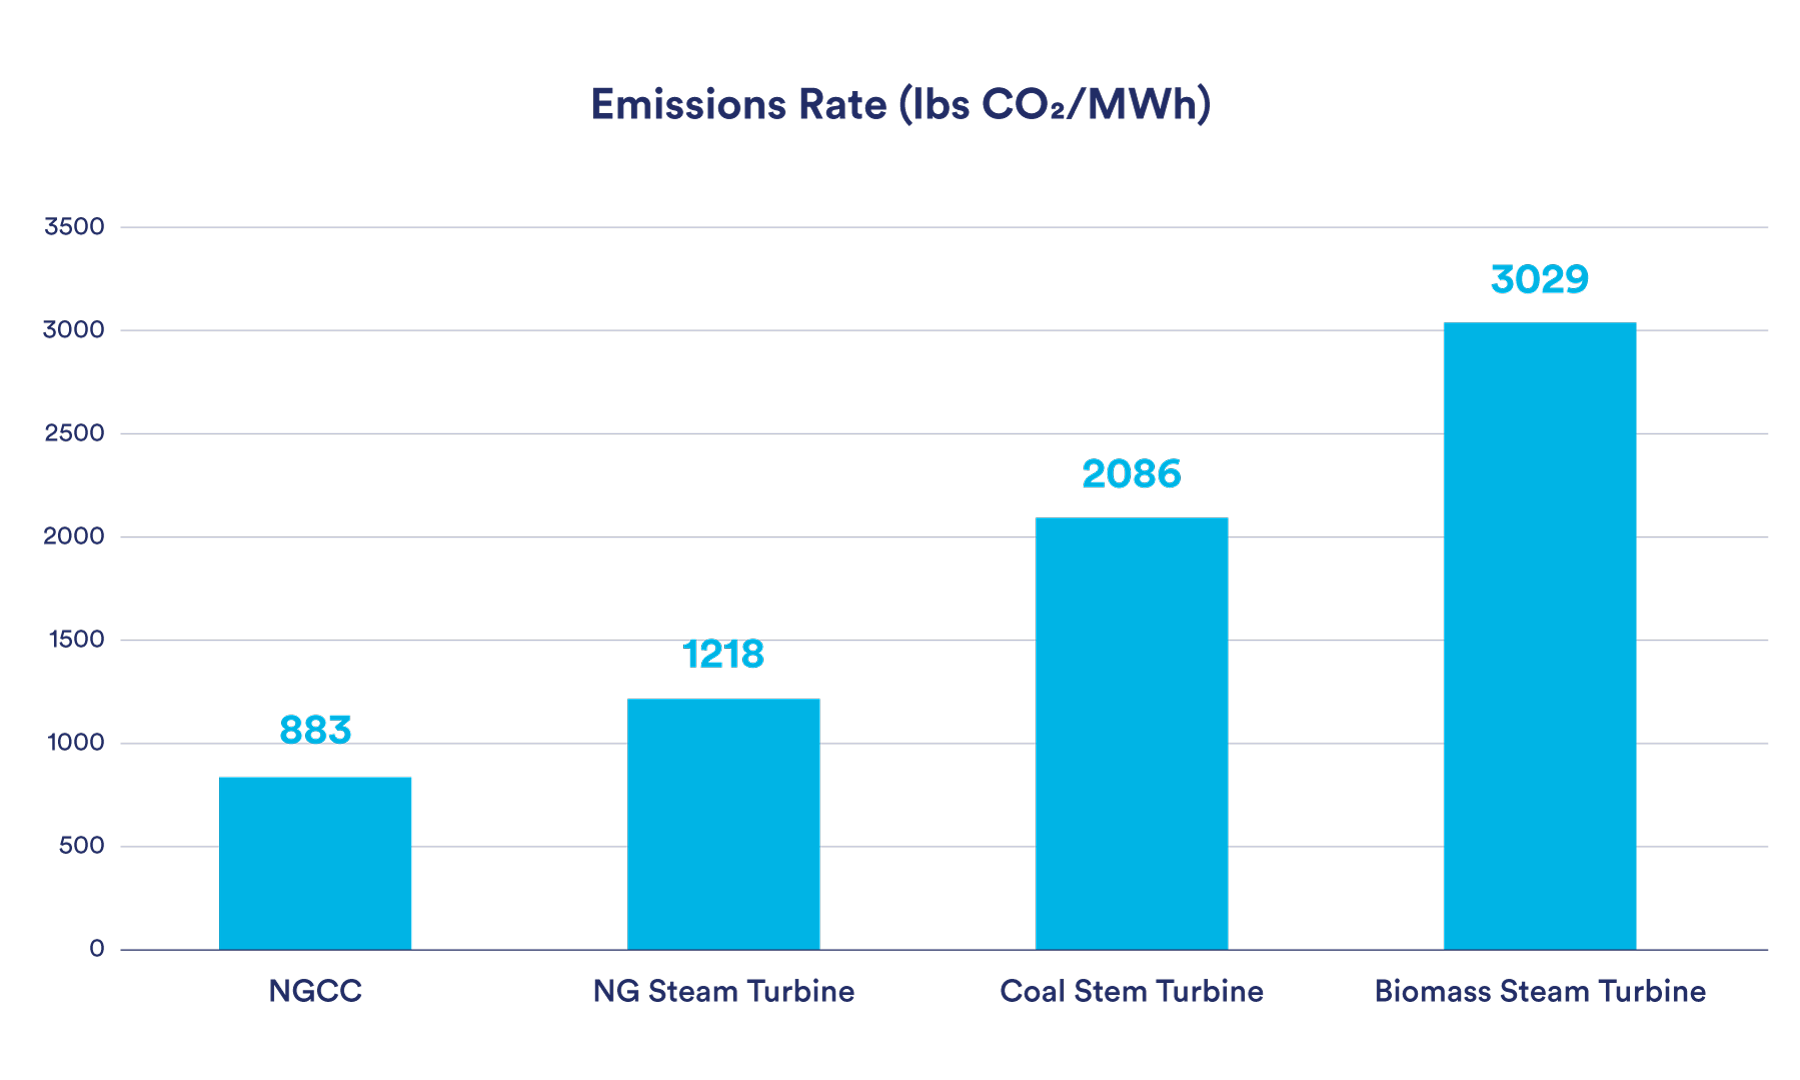 Biomass Emissions Rate Graph